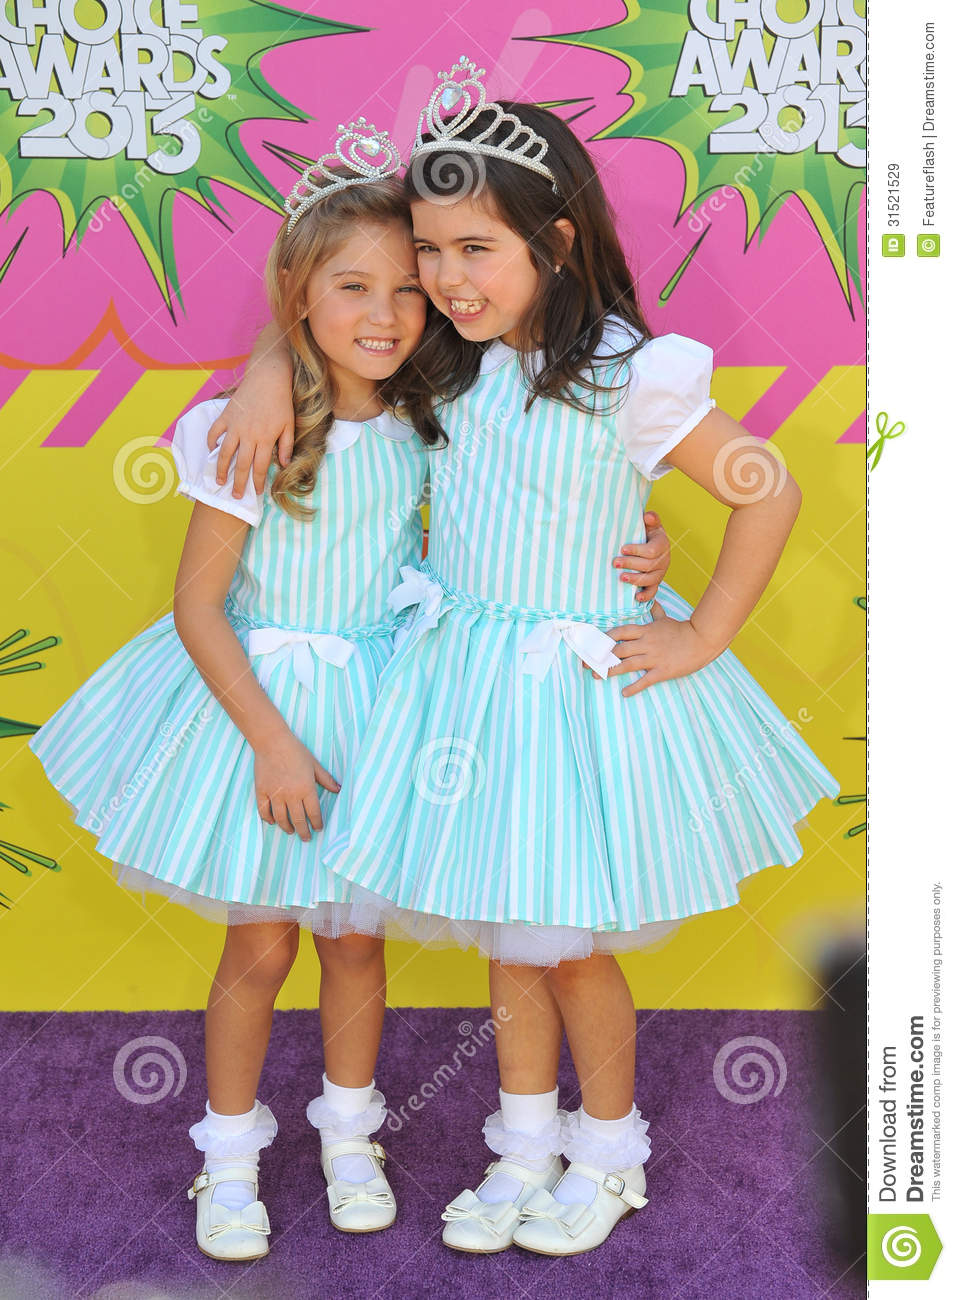 sophia grace brownlee nickelodeons - photo #15